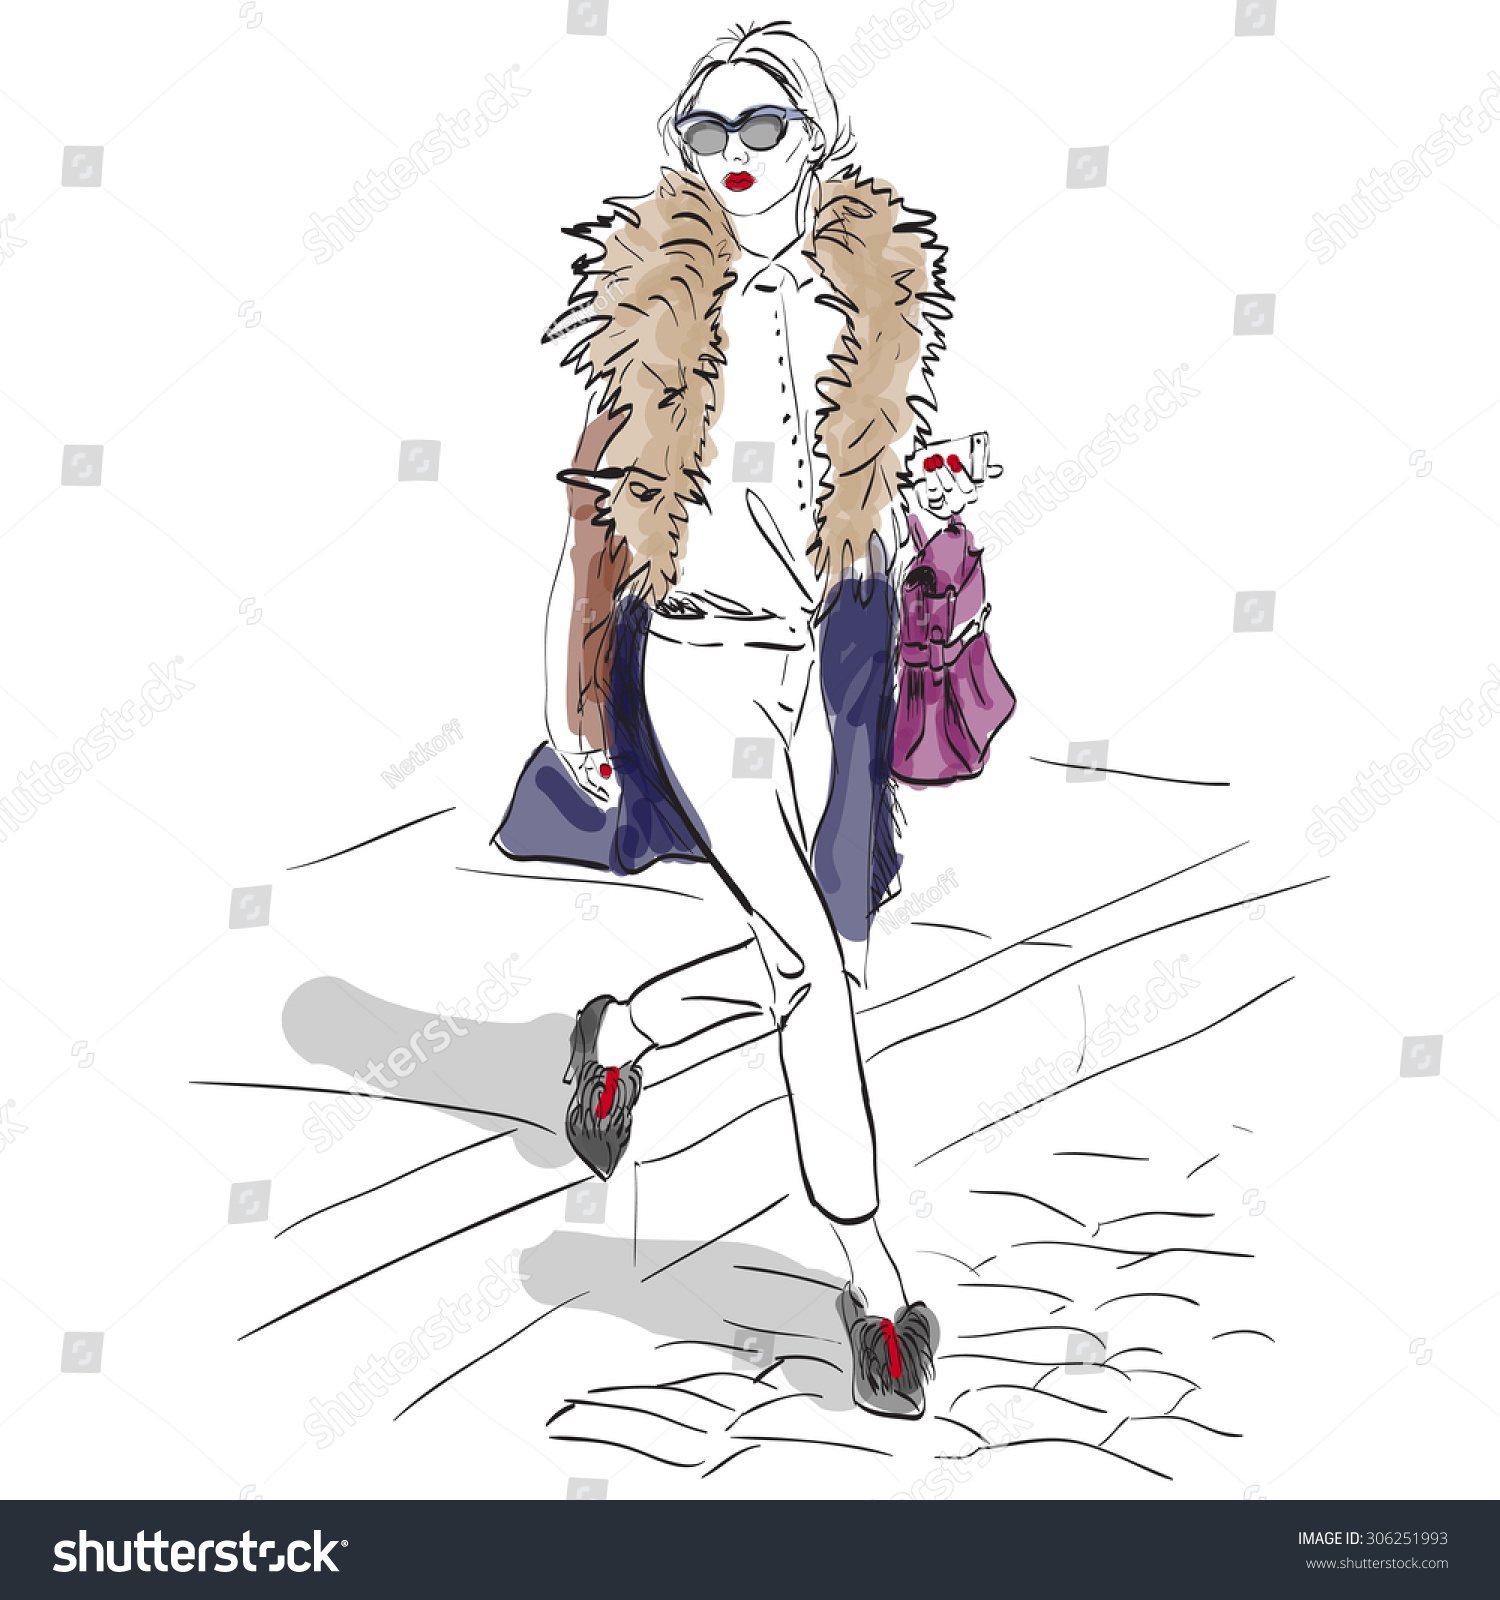 Model Fashion Sketch Excellent Vector Illustration Stock Vector Royalty Free 306251993